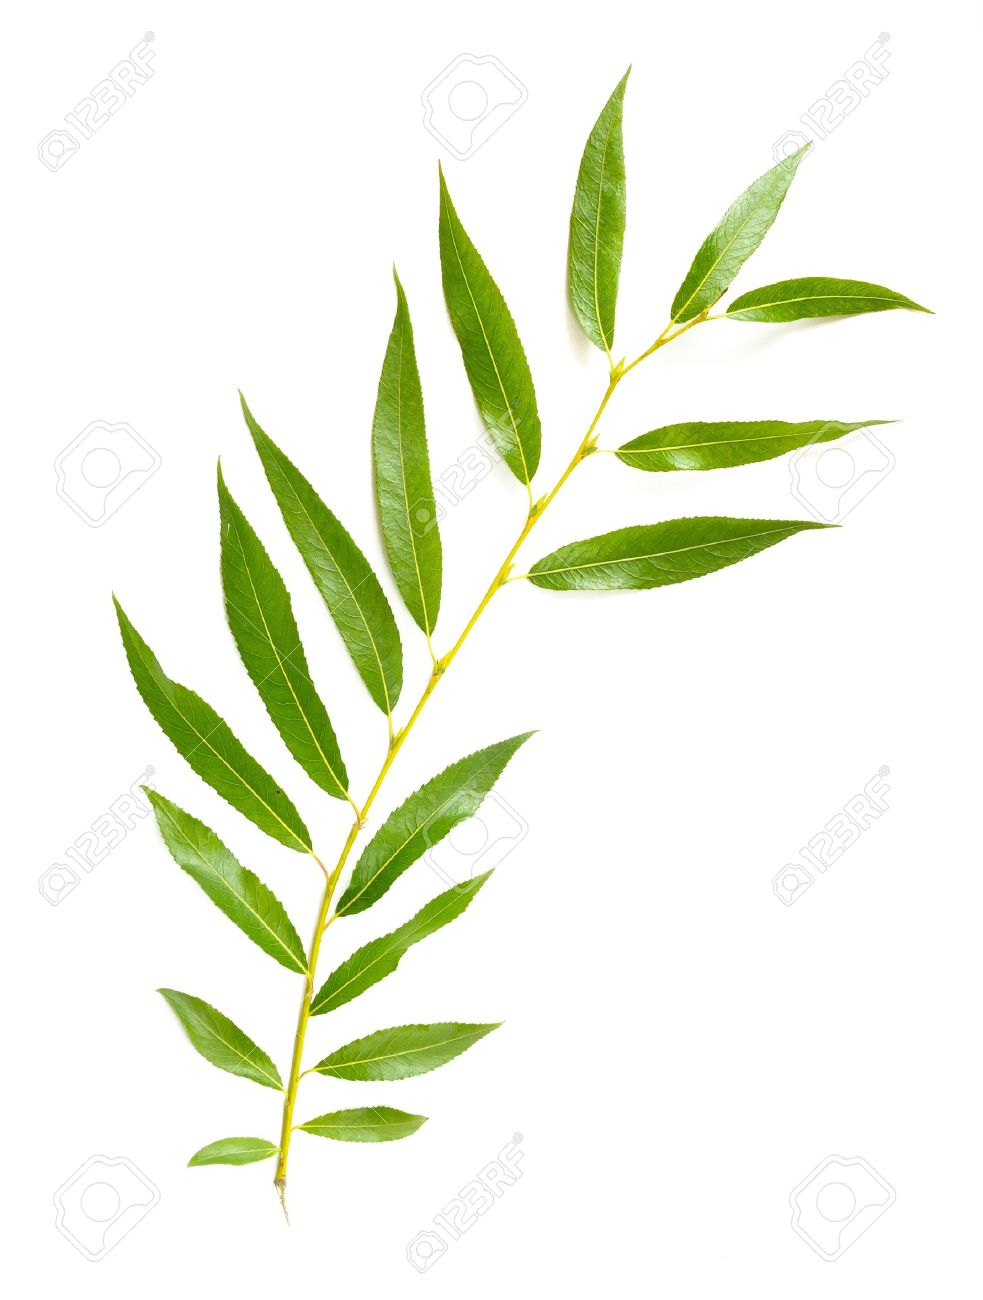 A Tender Green Weeping Willow Leaf On White Background Stock Photo Picture And Royalty Free Image Image 20954201,Best Cheap Champagne For Wedding Toast